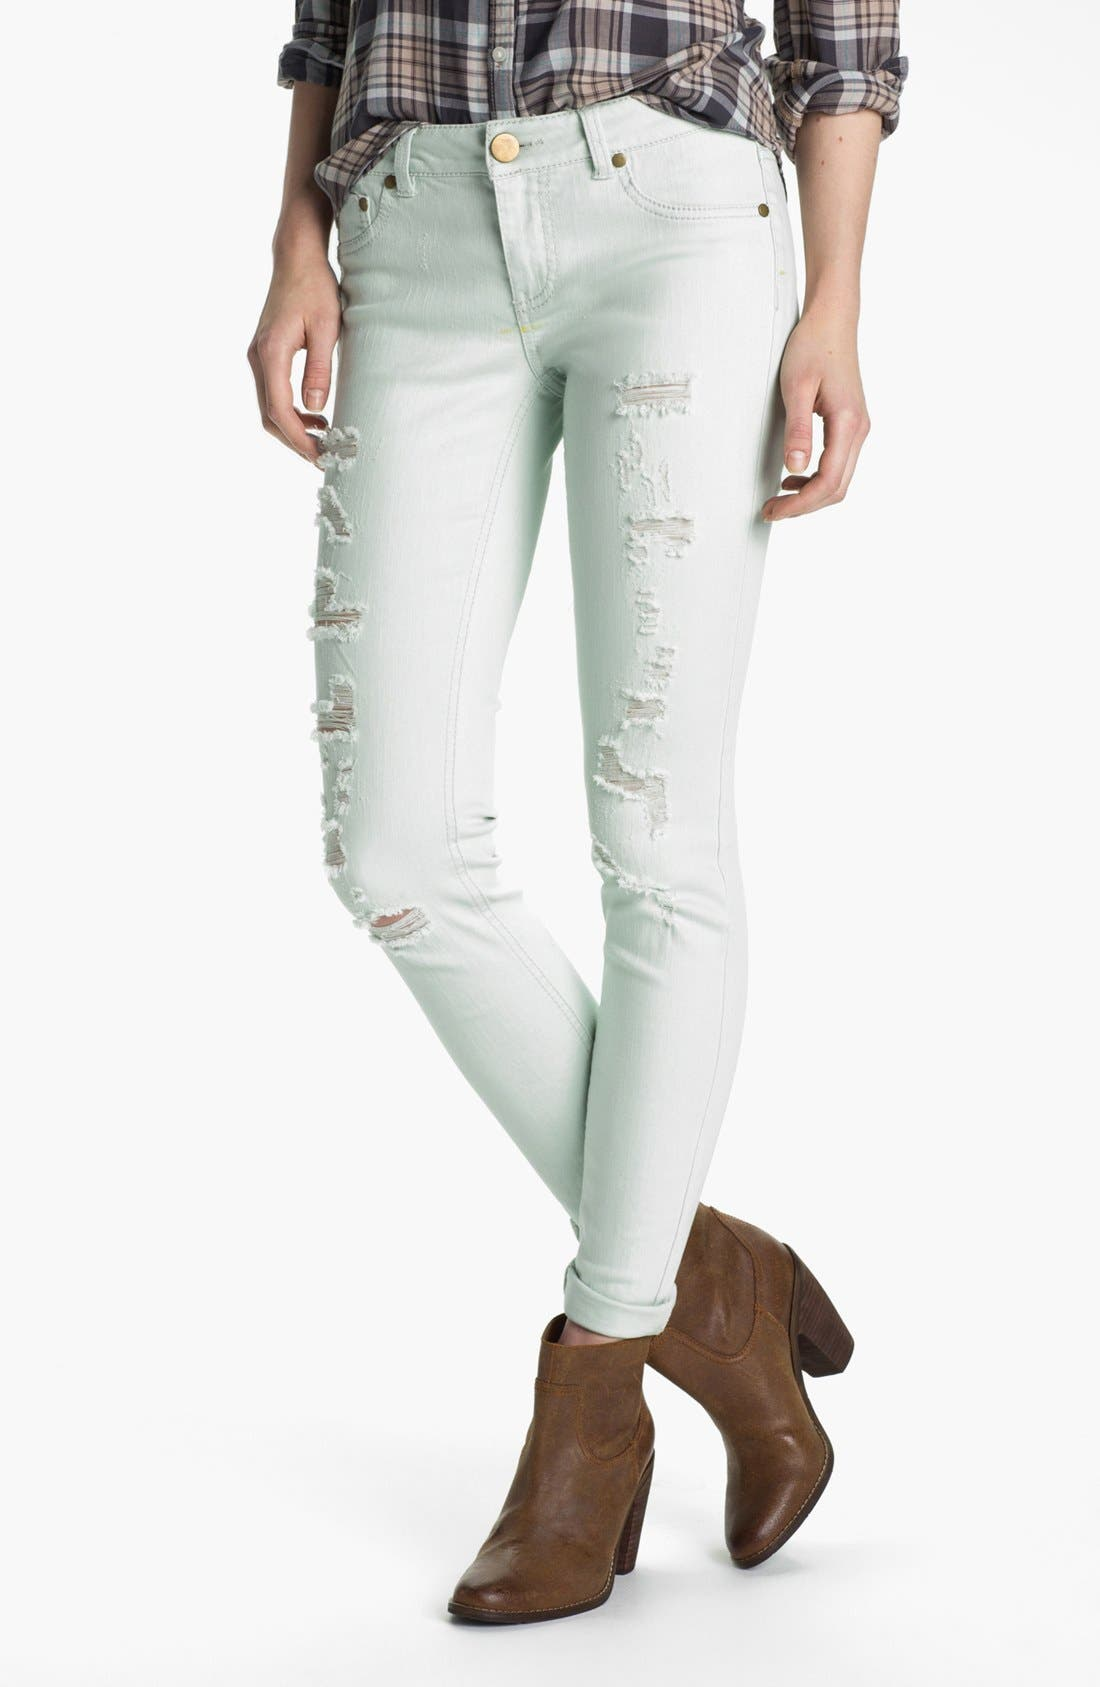 Alternate Image 1 Selected - Fire Destroyed Pastel Denim Skinny Jeans (Juniors) (Online Only)